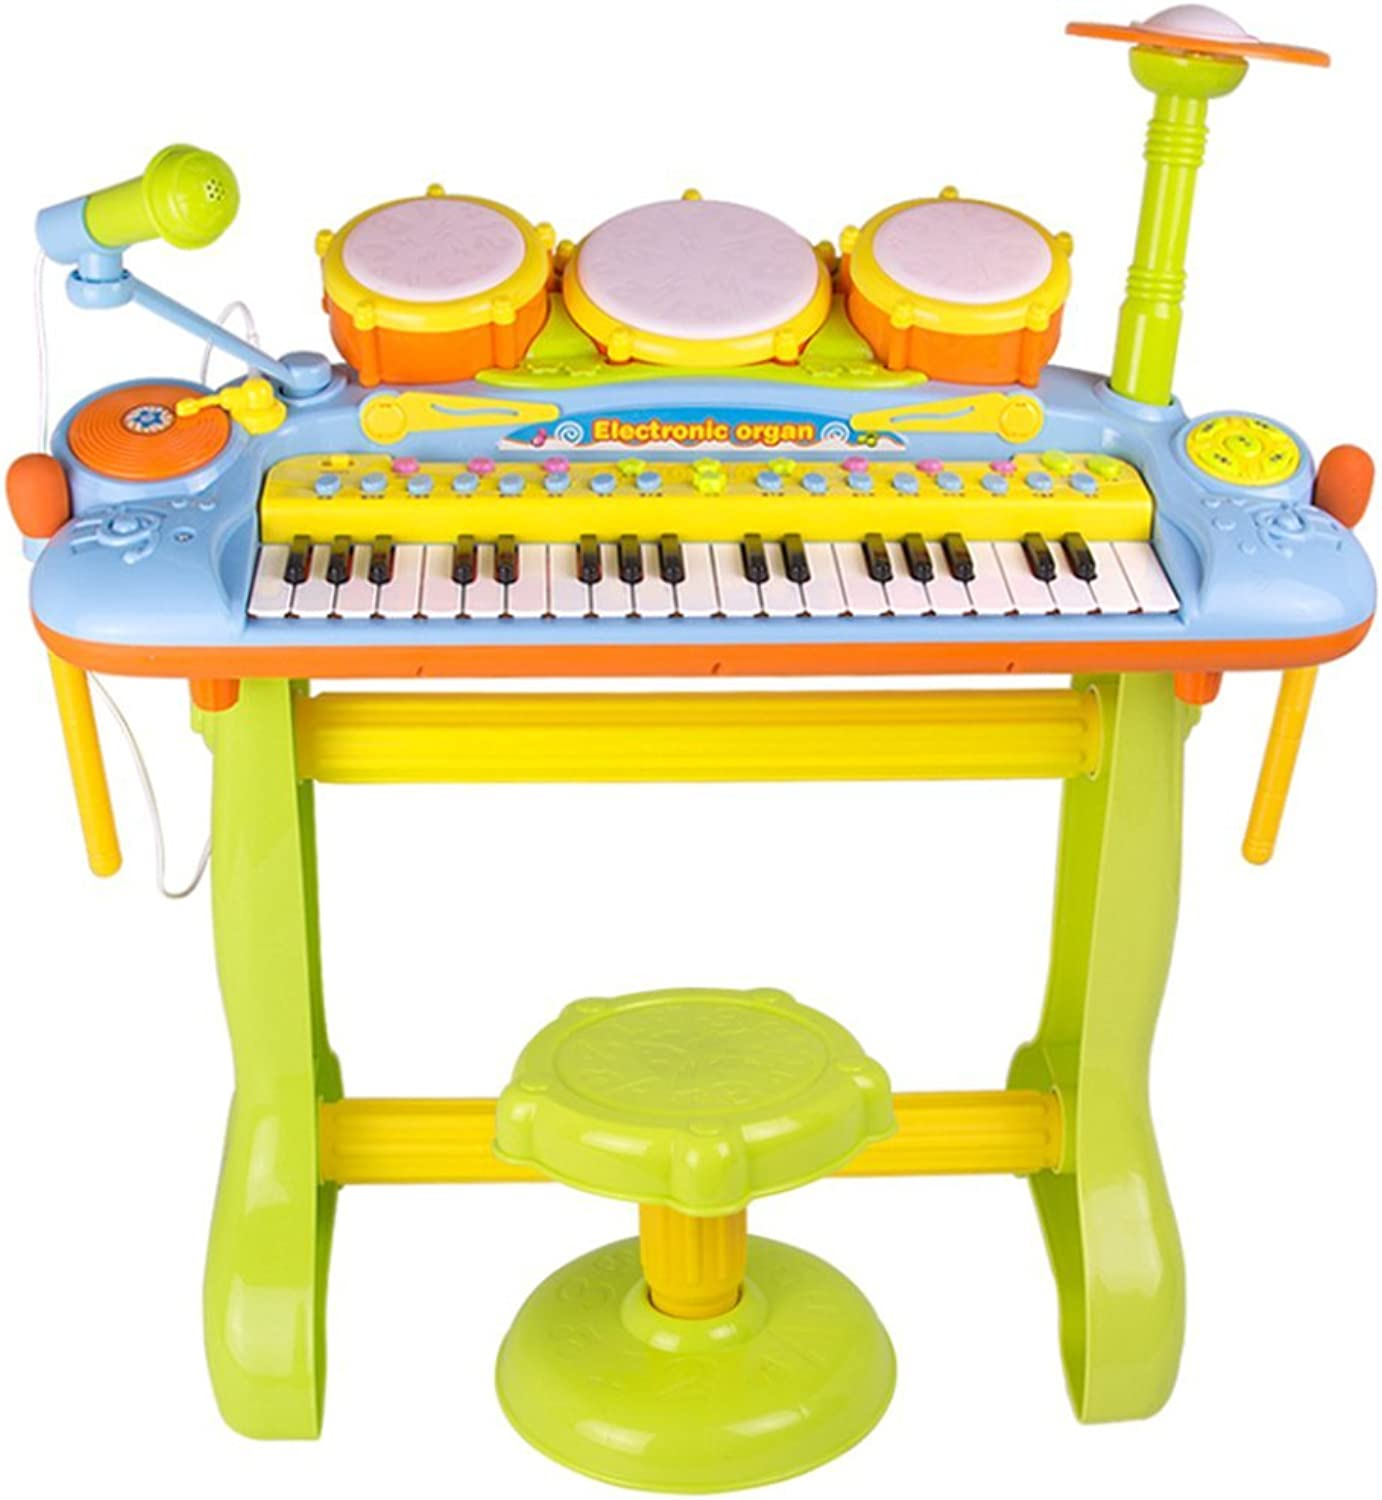 LINAG Kids 31 Keys Small Piano Toy Music Instrument Percussion Stool Electronic Microphone Singing Music Development Educational Game Mini Best Kids Baby Gift Multi-Function Learn-To-Play Plastic